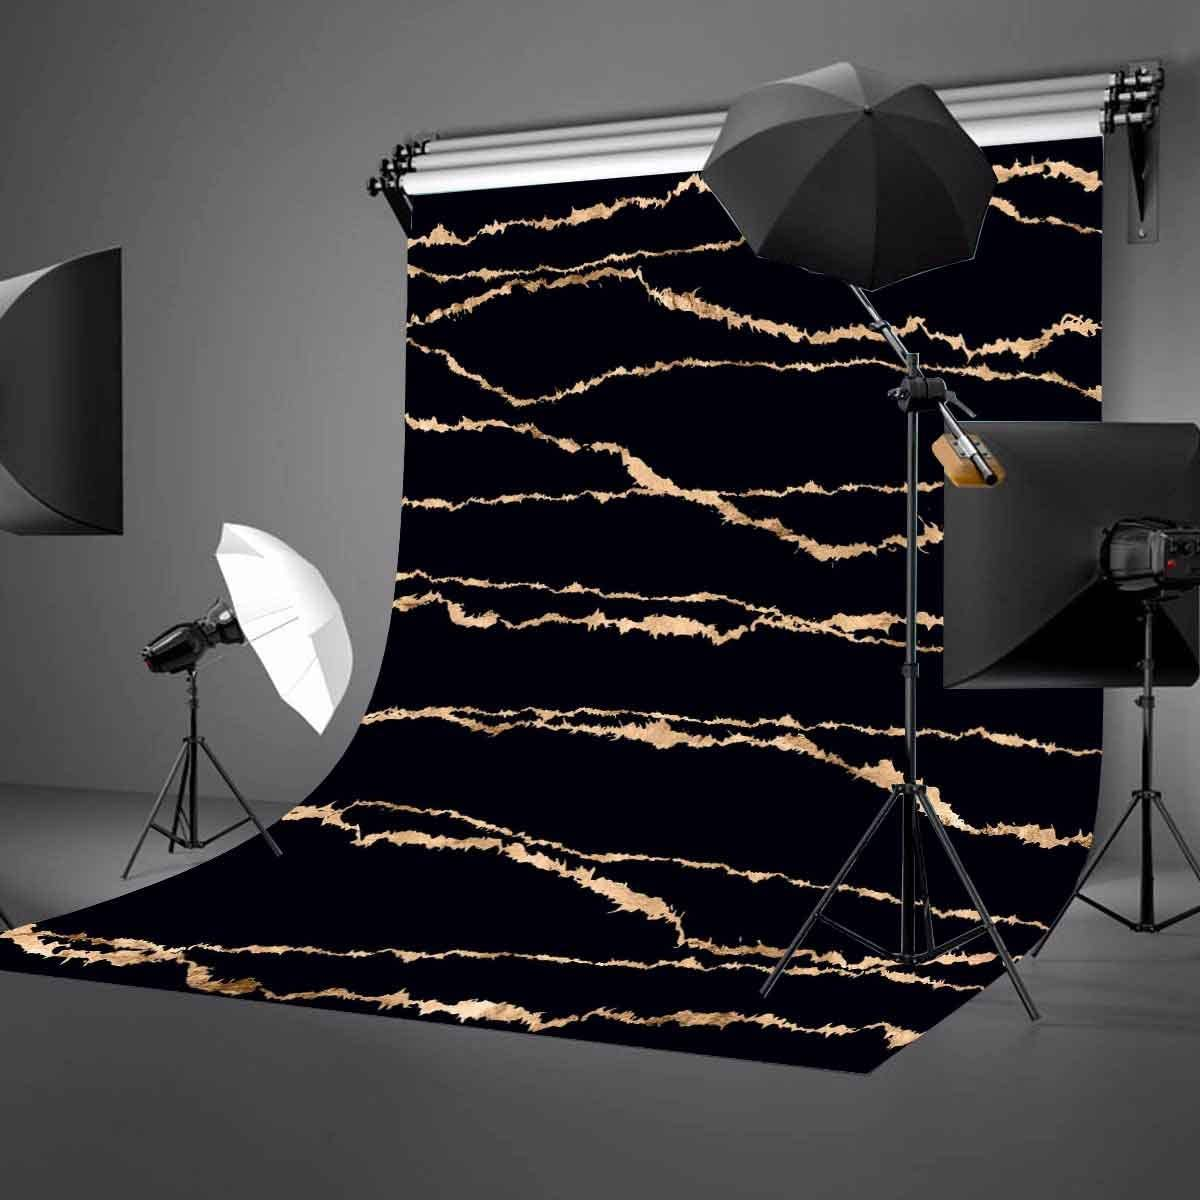 LYLYCTY 5x7ft Black Texture Backdrop Black Marble Floor Texture Photography Background and Studio Photography Backdrop Props LYGE757